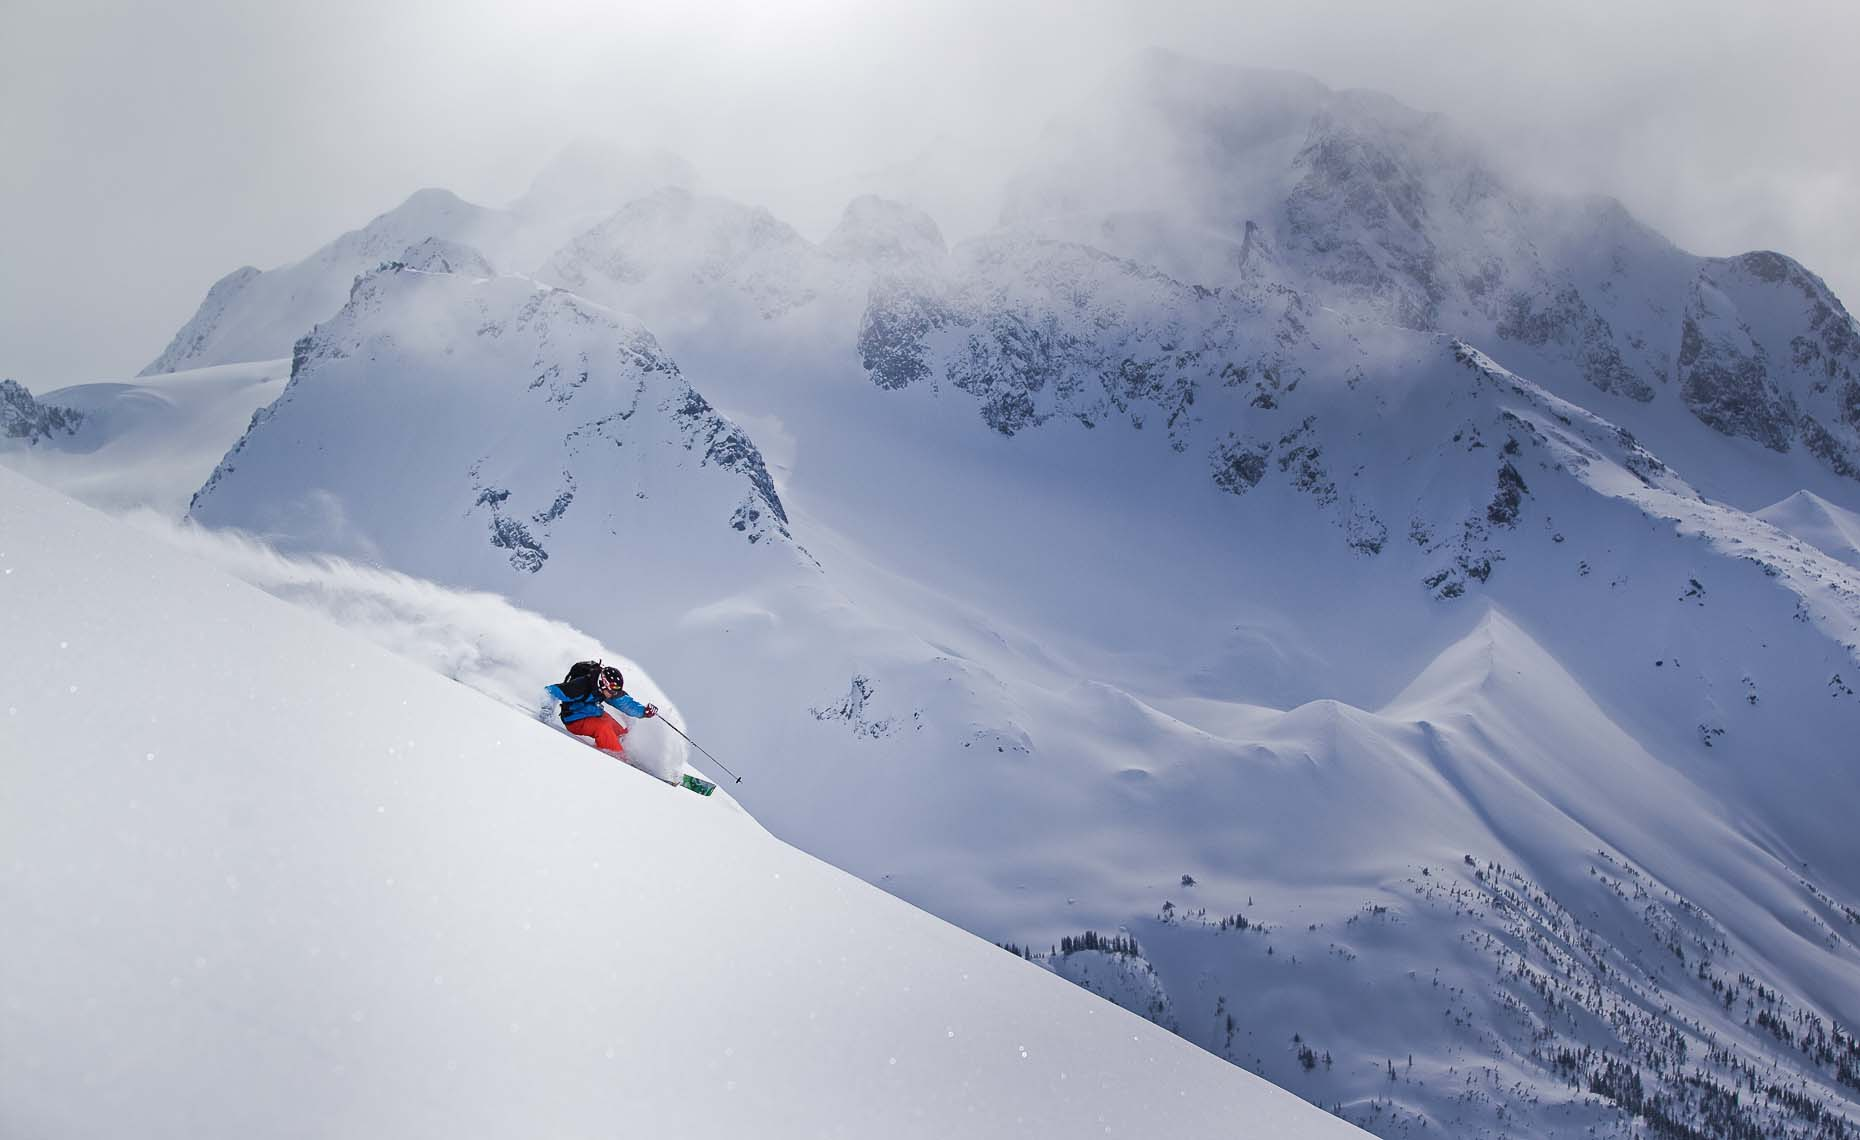 heliskiing photographer from whistler shows winter athletes